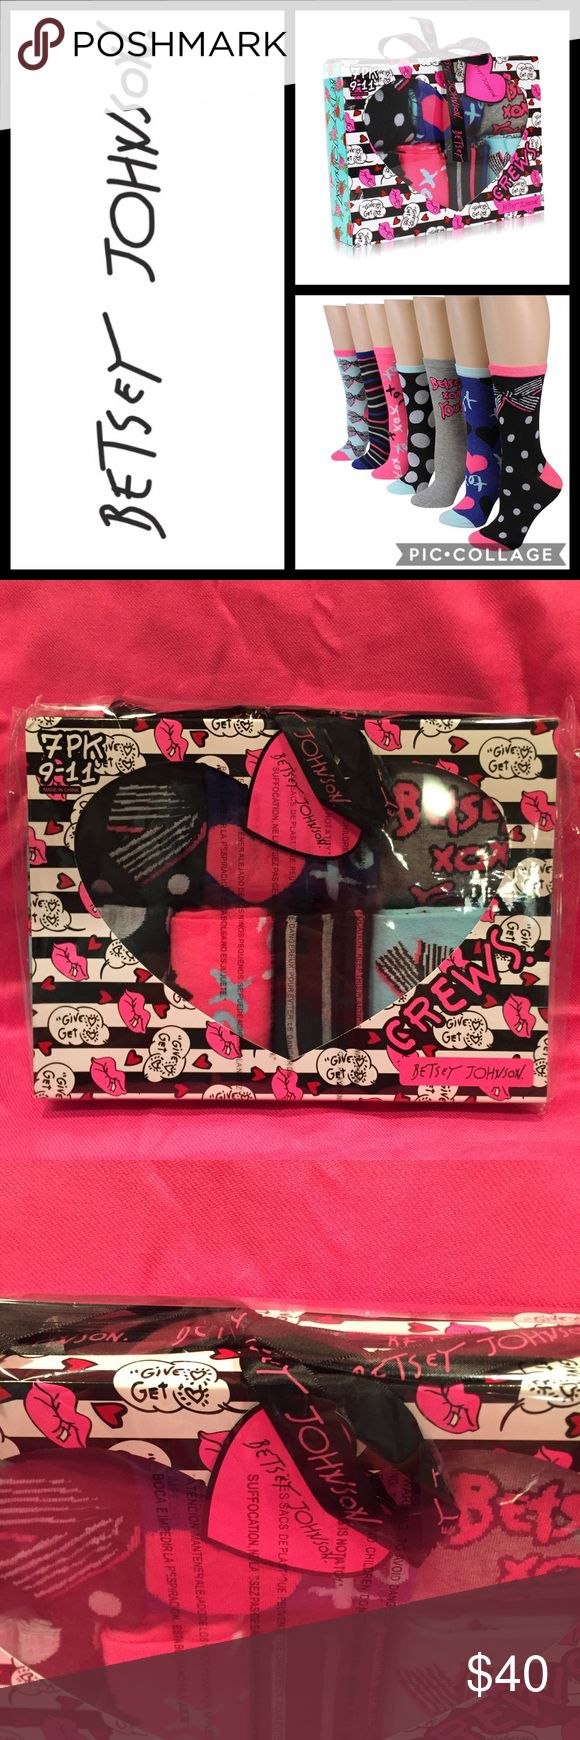 🆕🎁 BETSEY JOHNSON Socks 7-Pack Gift Box NWT 🎁 Women's BETSEY JOHNSON 7-Pack Fashion Crew Socks Gift Box Set Brand New In Sealed Package Retail Price: $50.00 Plus Tax Includes 7 Assorted Designs Of Hearts, Bows And More  Size: One Size; Fits Sock Sizes 9-11 / Shoe Sizes 5-10.5 Material: 97% Polyester, 3% Spandex 🎁 Comes Wrapped In Cellophane With A Betsey Johnson Bow. Ready For Gift Giving! 🎁 Smoke Free Home 🛍 Bundle & Save 🛍 Betsey Johnson Accessories Hosiery & Socks